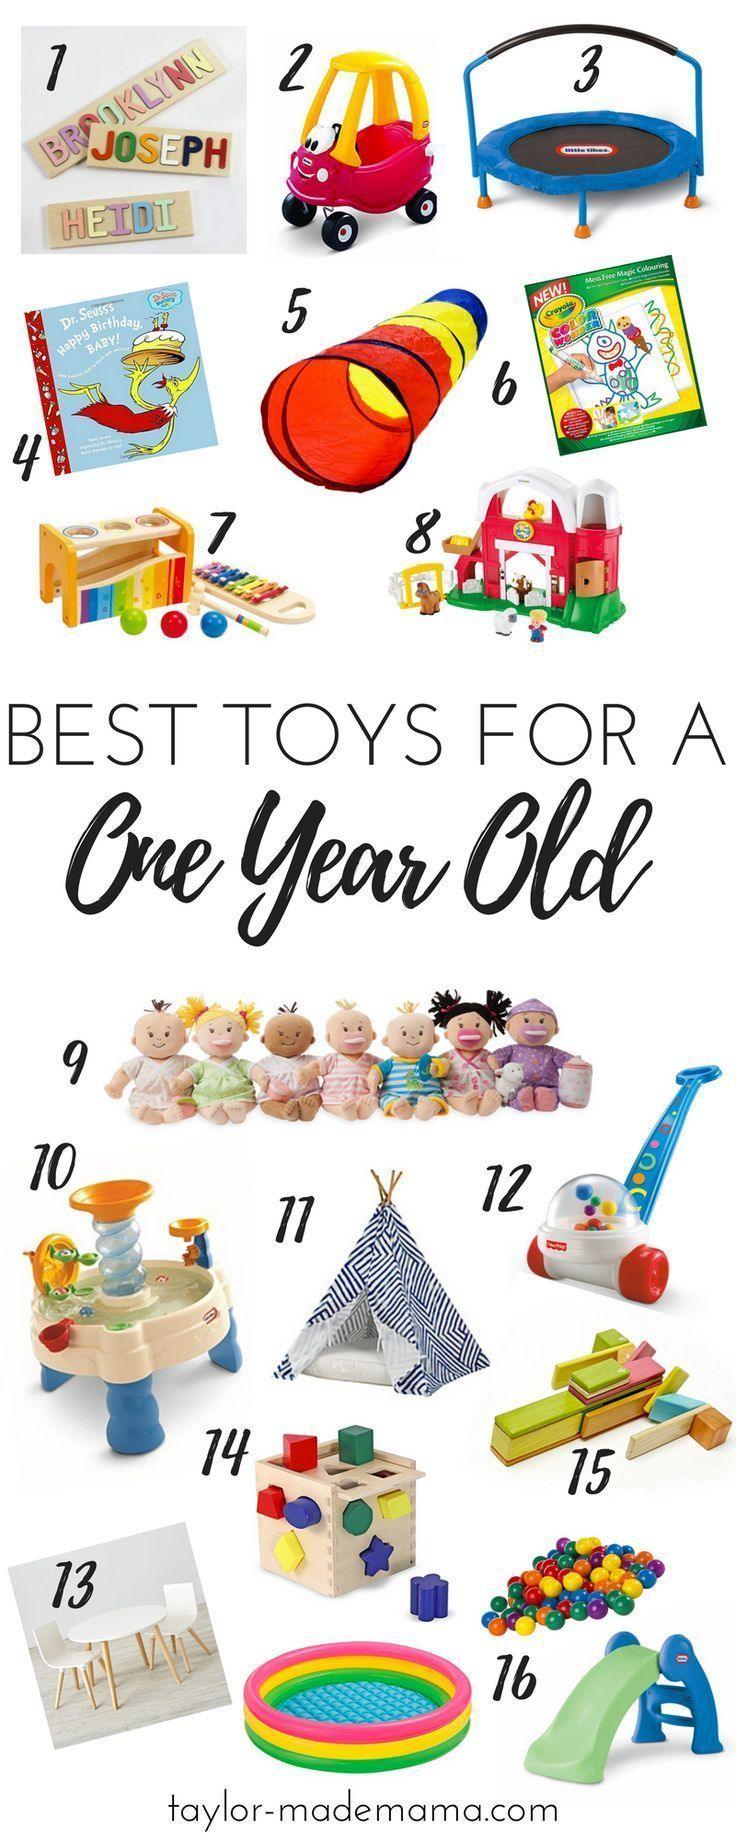 The Ultimate Gift Guide For A One Year Old Or 1st Birthday Party What To Buy 1 These Are Definitely Top Toys